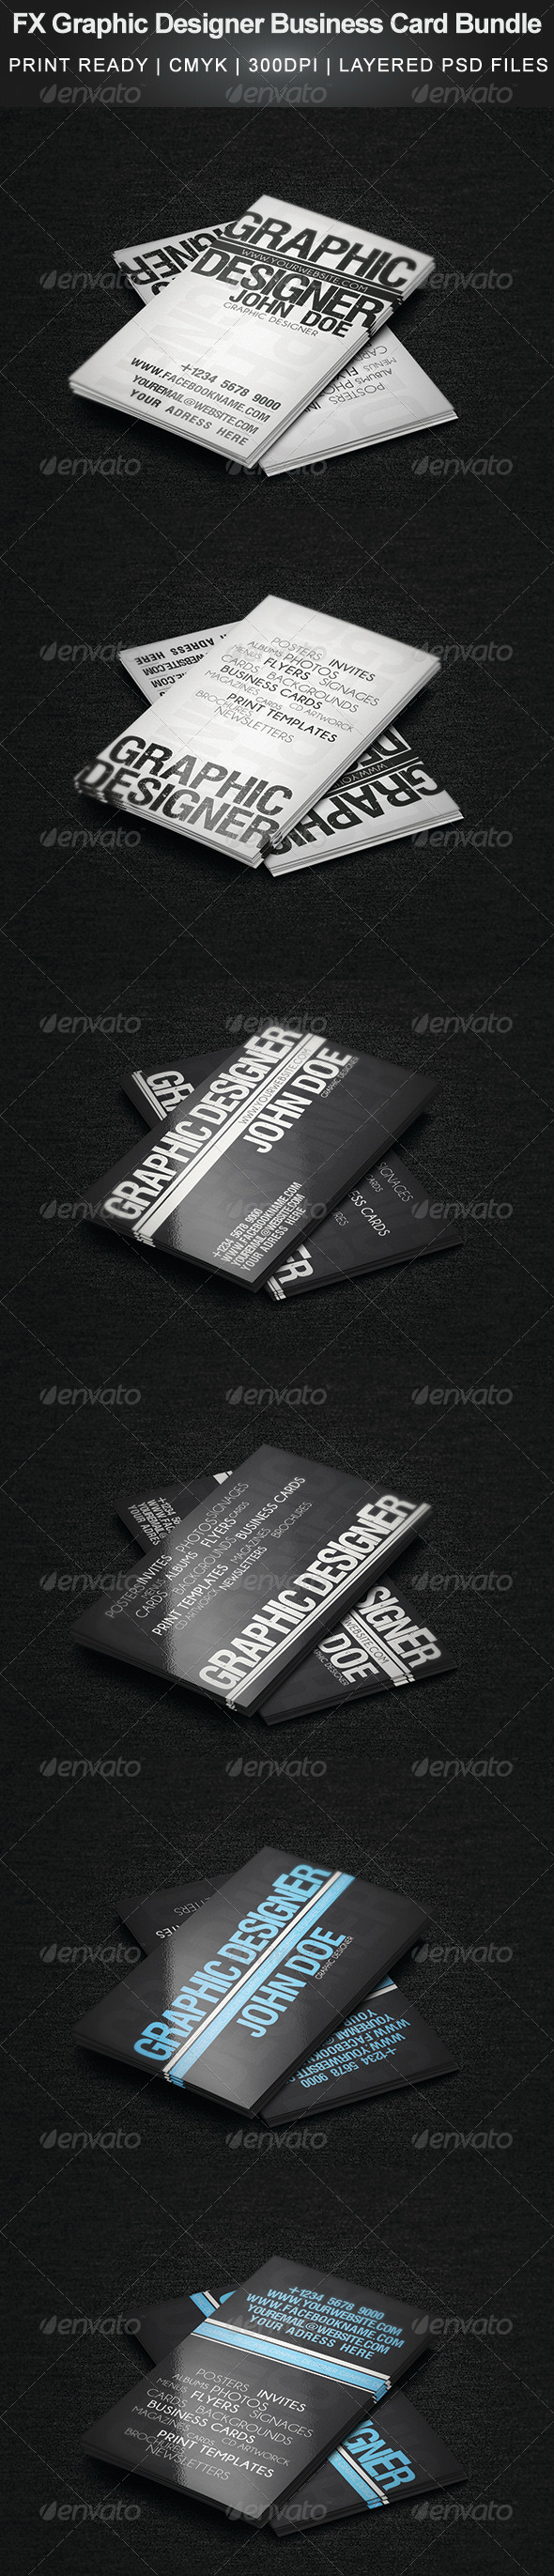 FX Graphic Designer Business Card Bundle - Business Cards Print Templates